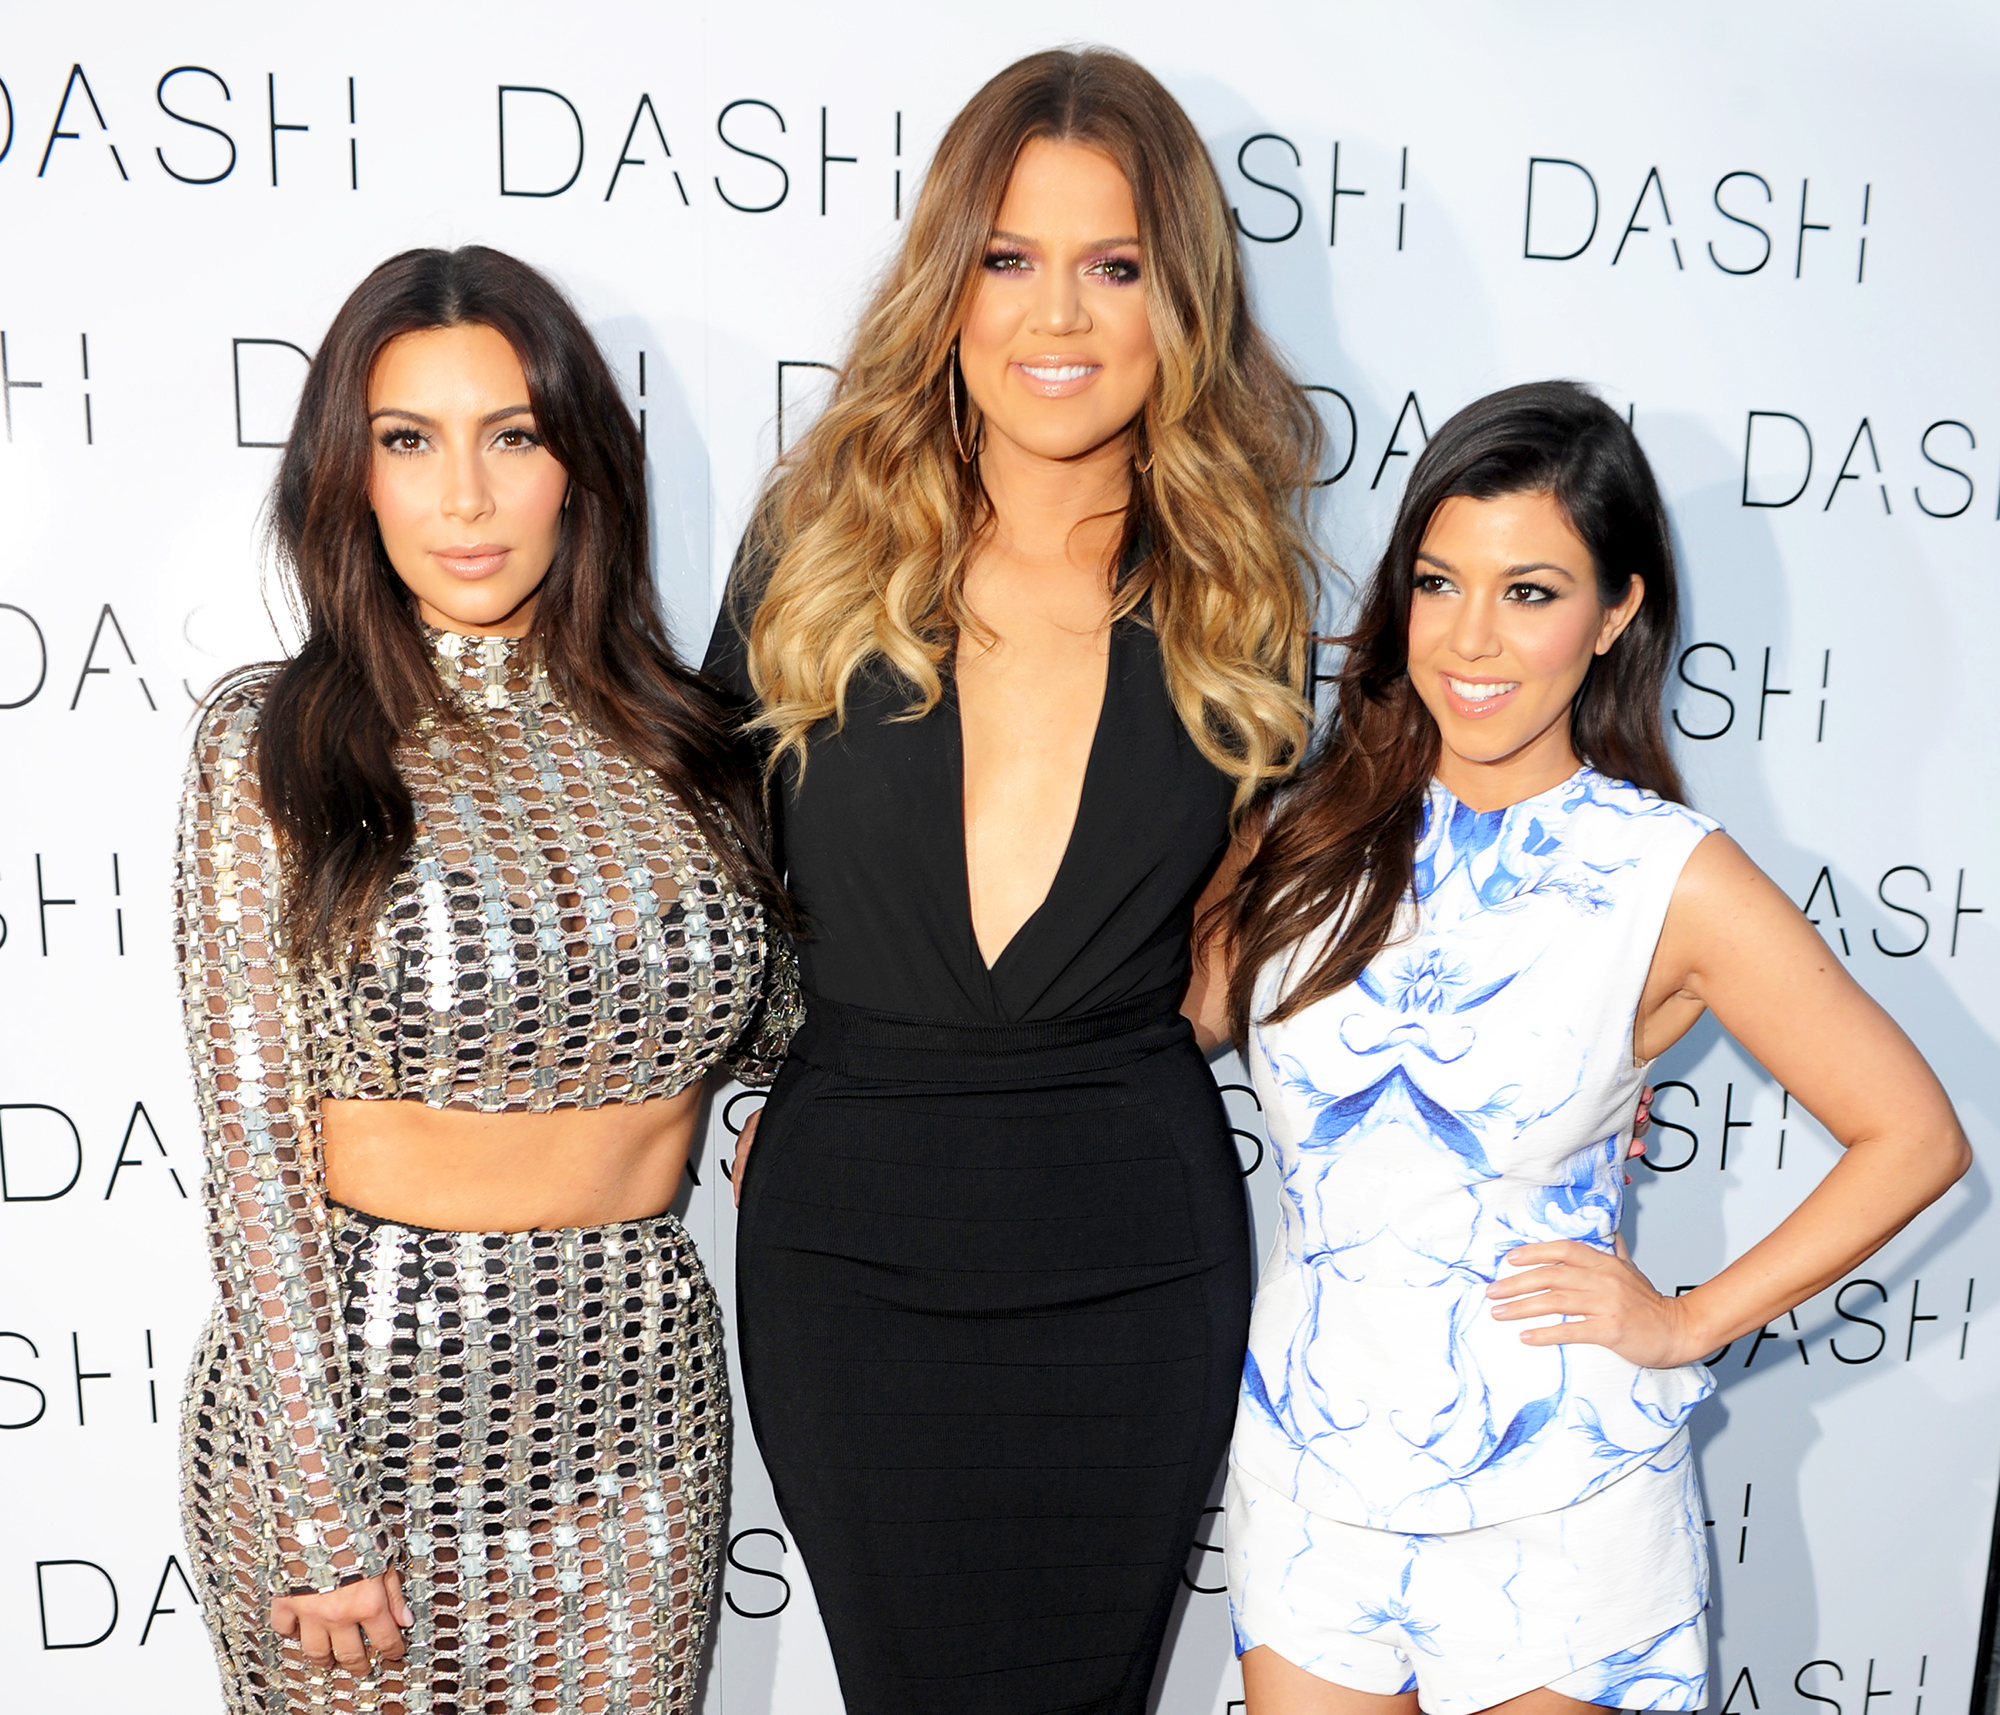 The Kardashians Are Closing Down the DASH Stores!